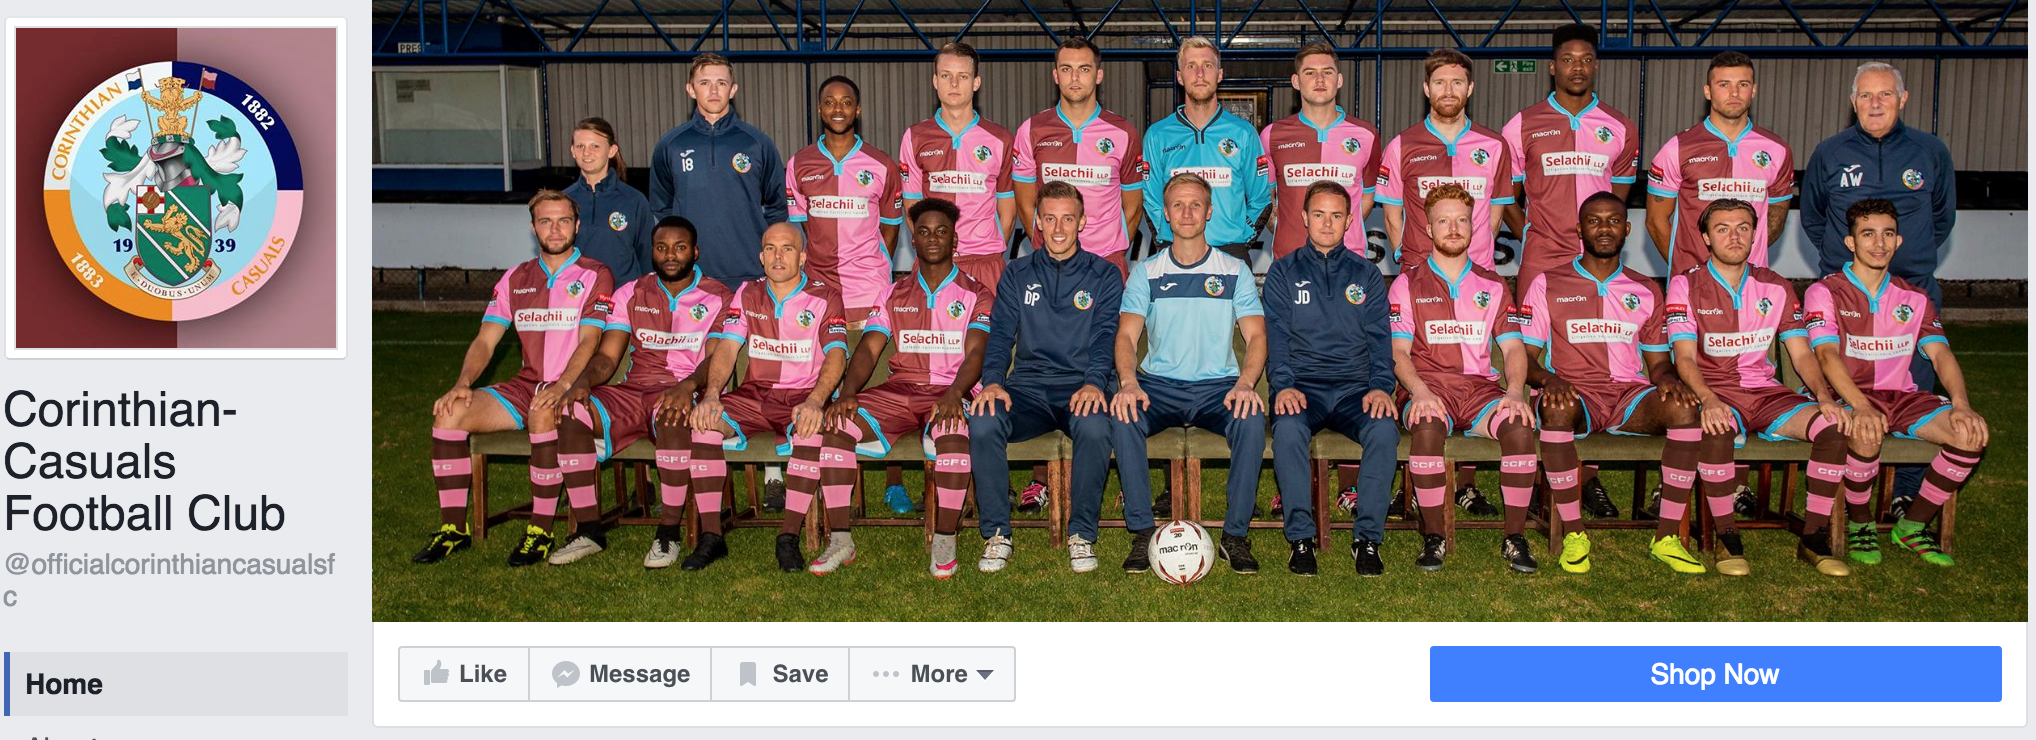 The current Corinthian Casuals Facebook page